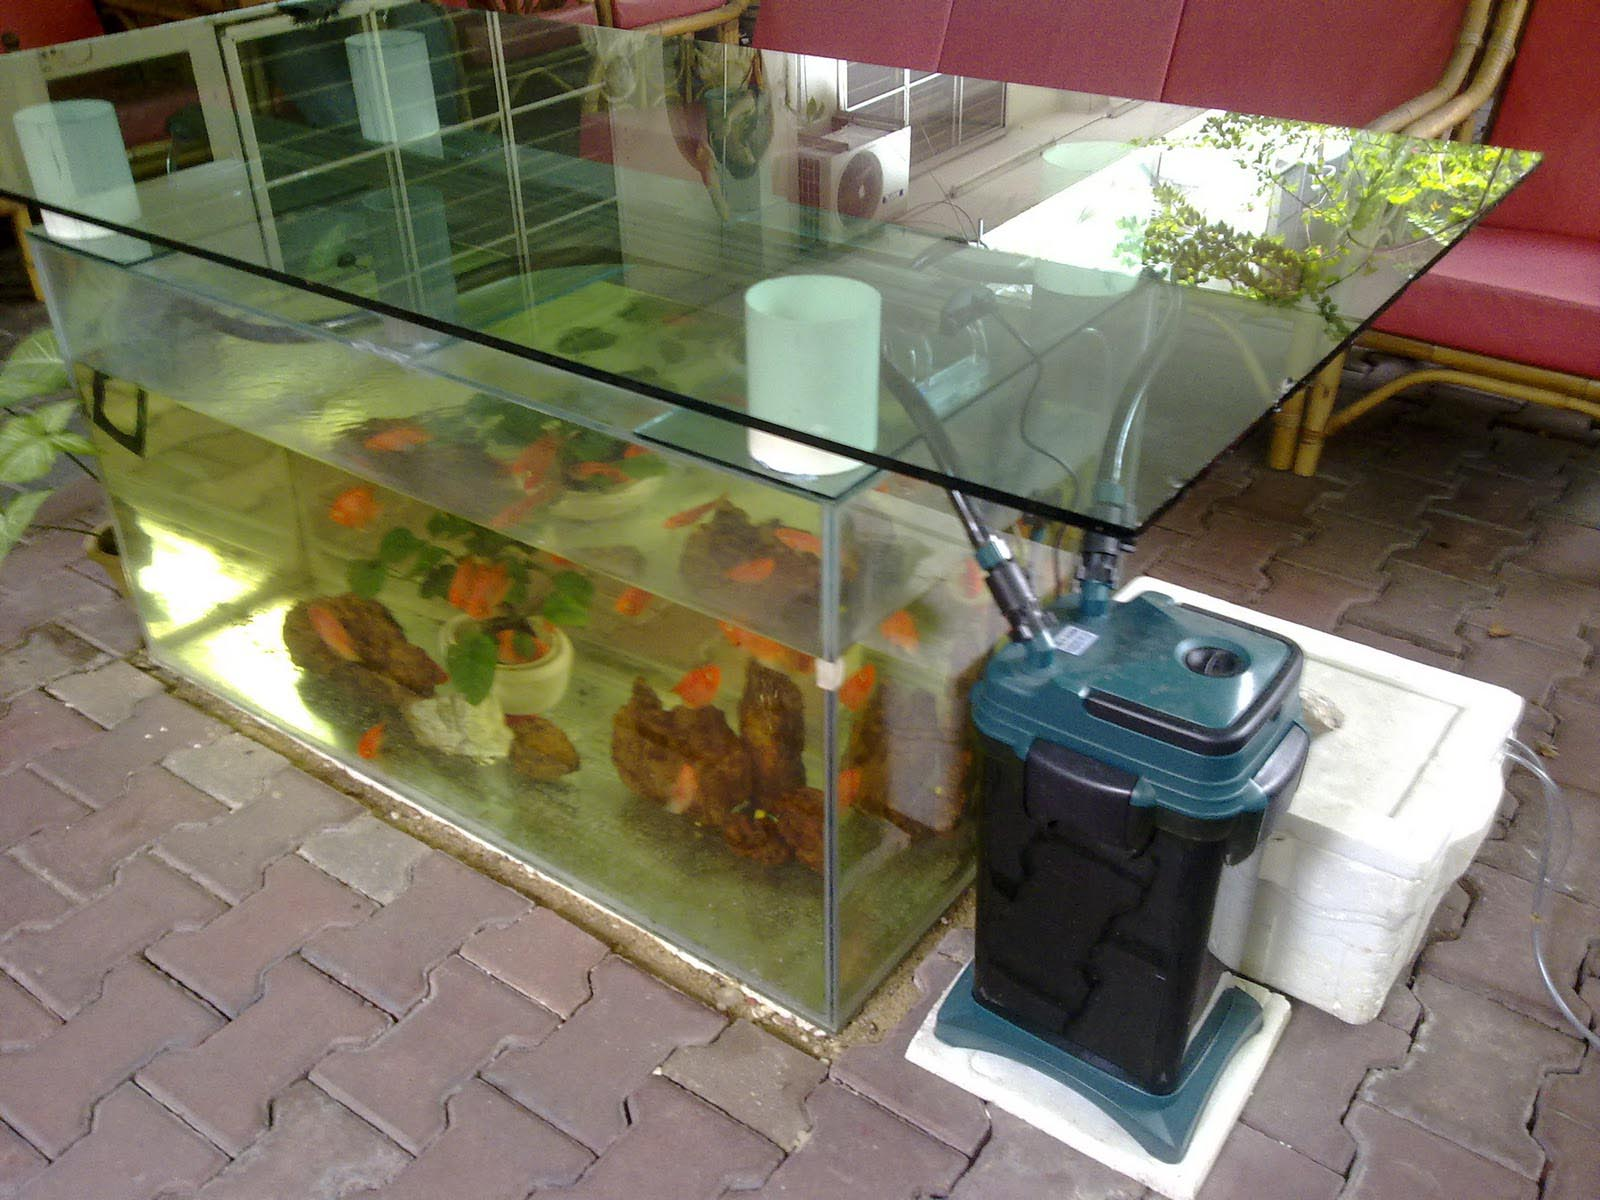 Ð¡ustom Shapes and Frames for Aquarium Coffee Table